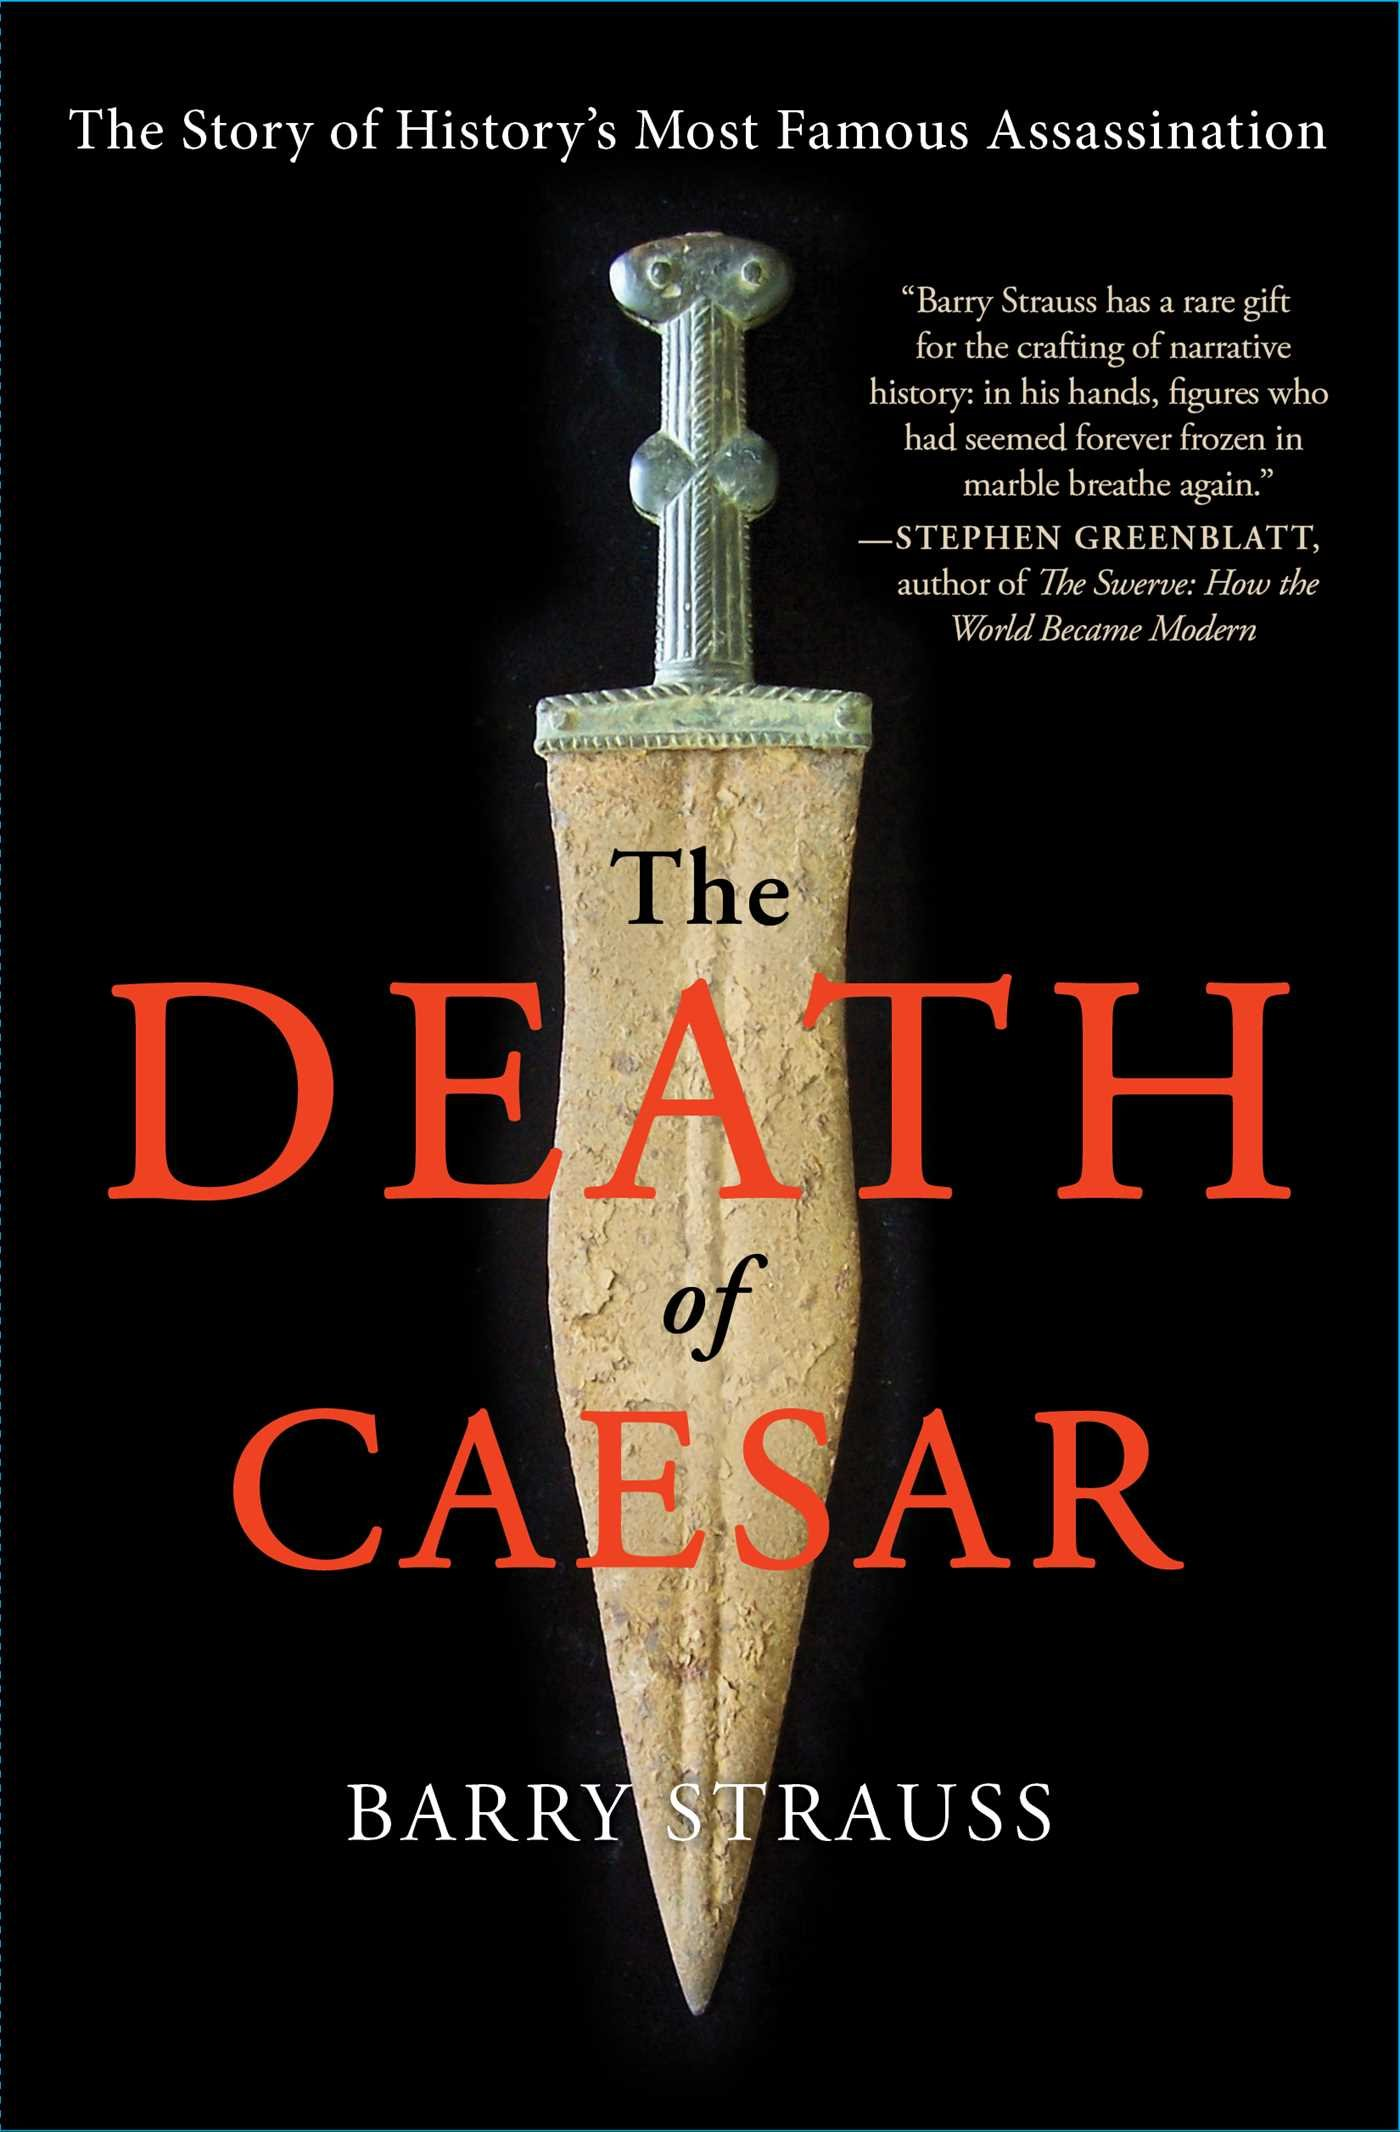 The Death of Caesar